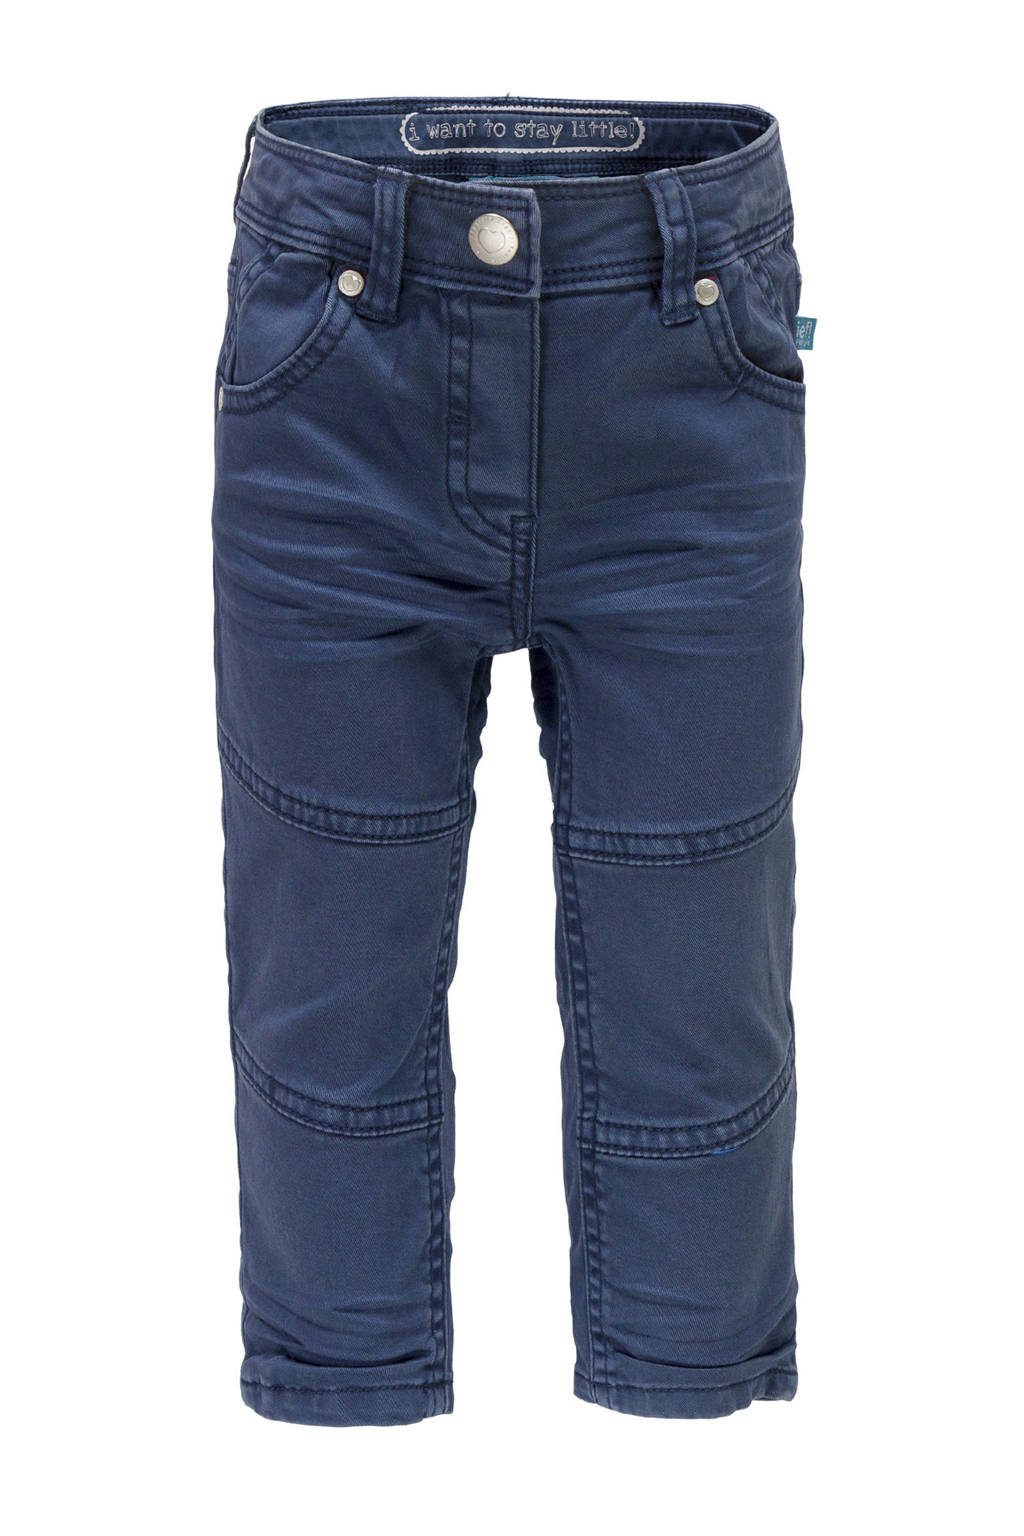 lief! slim fit jeans, Dark denim